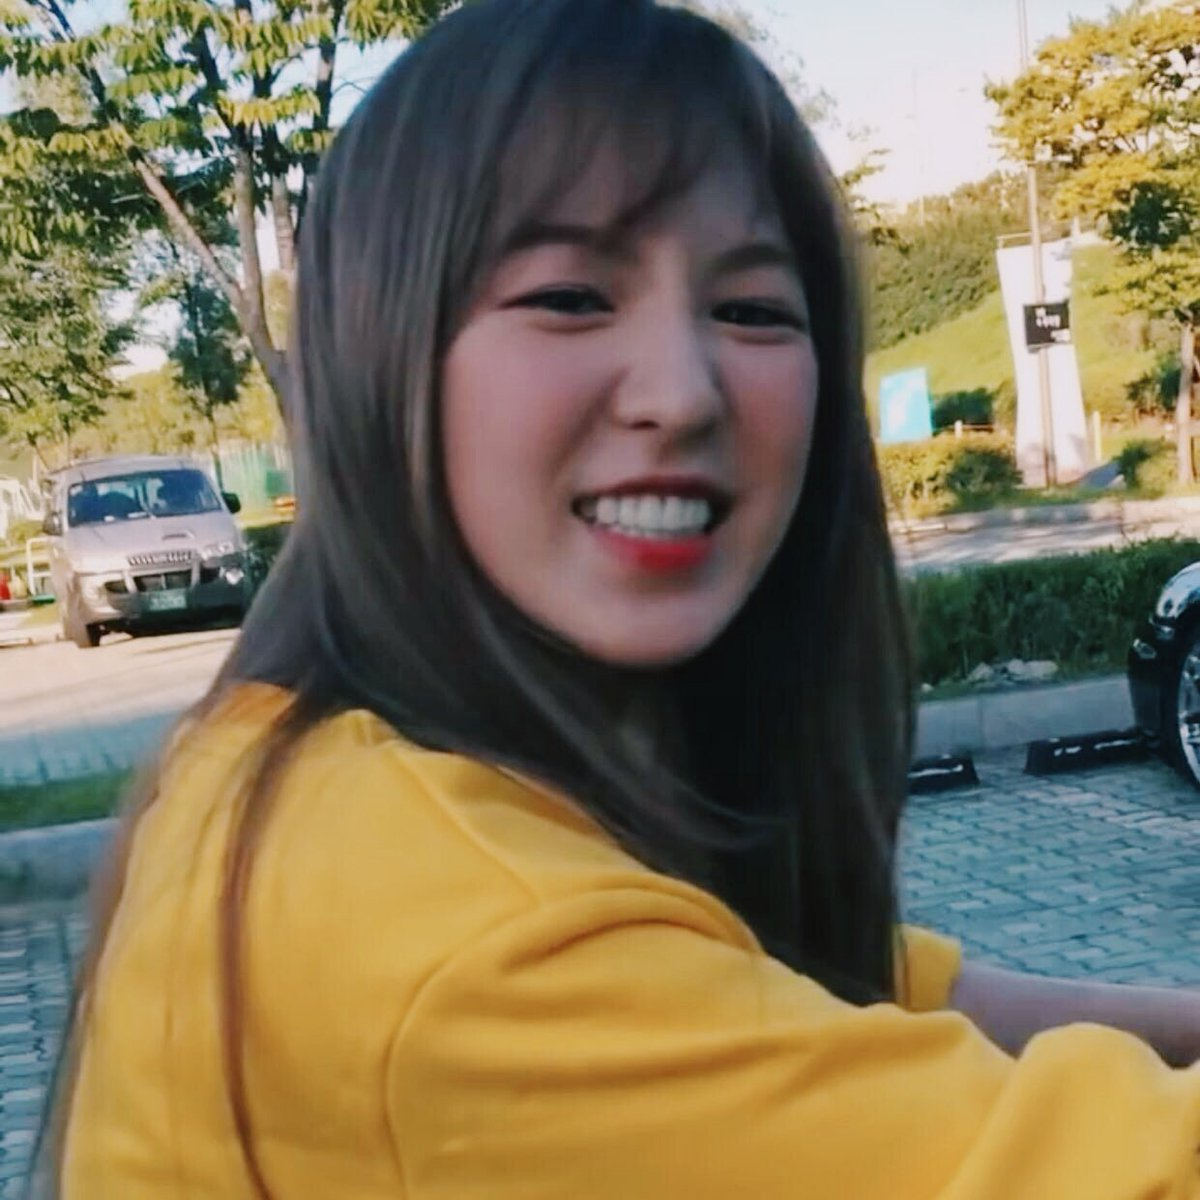 Aesthetic 뿅 On Twitter Wendy Red Velvet Aesthetic Rt Or Like If You Save Or Use Yellow Bright Wendy Redvelvet Aesthetic Happywendyday Https T Co Ng2ojdpkzu